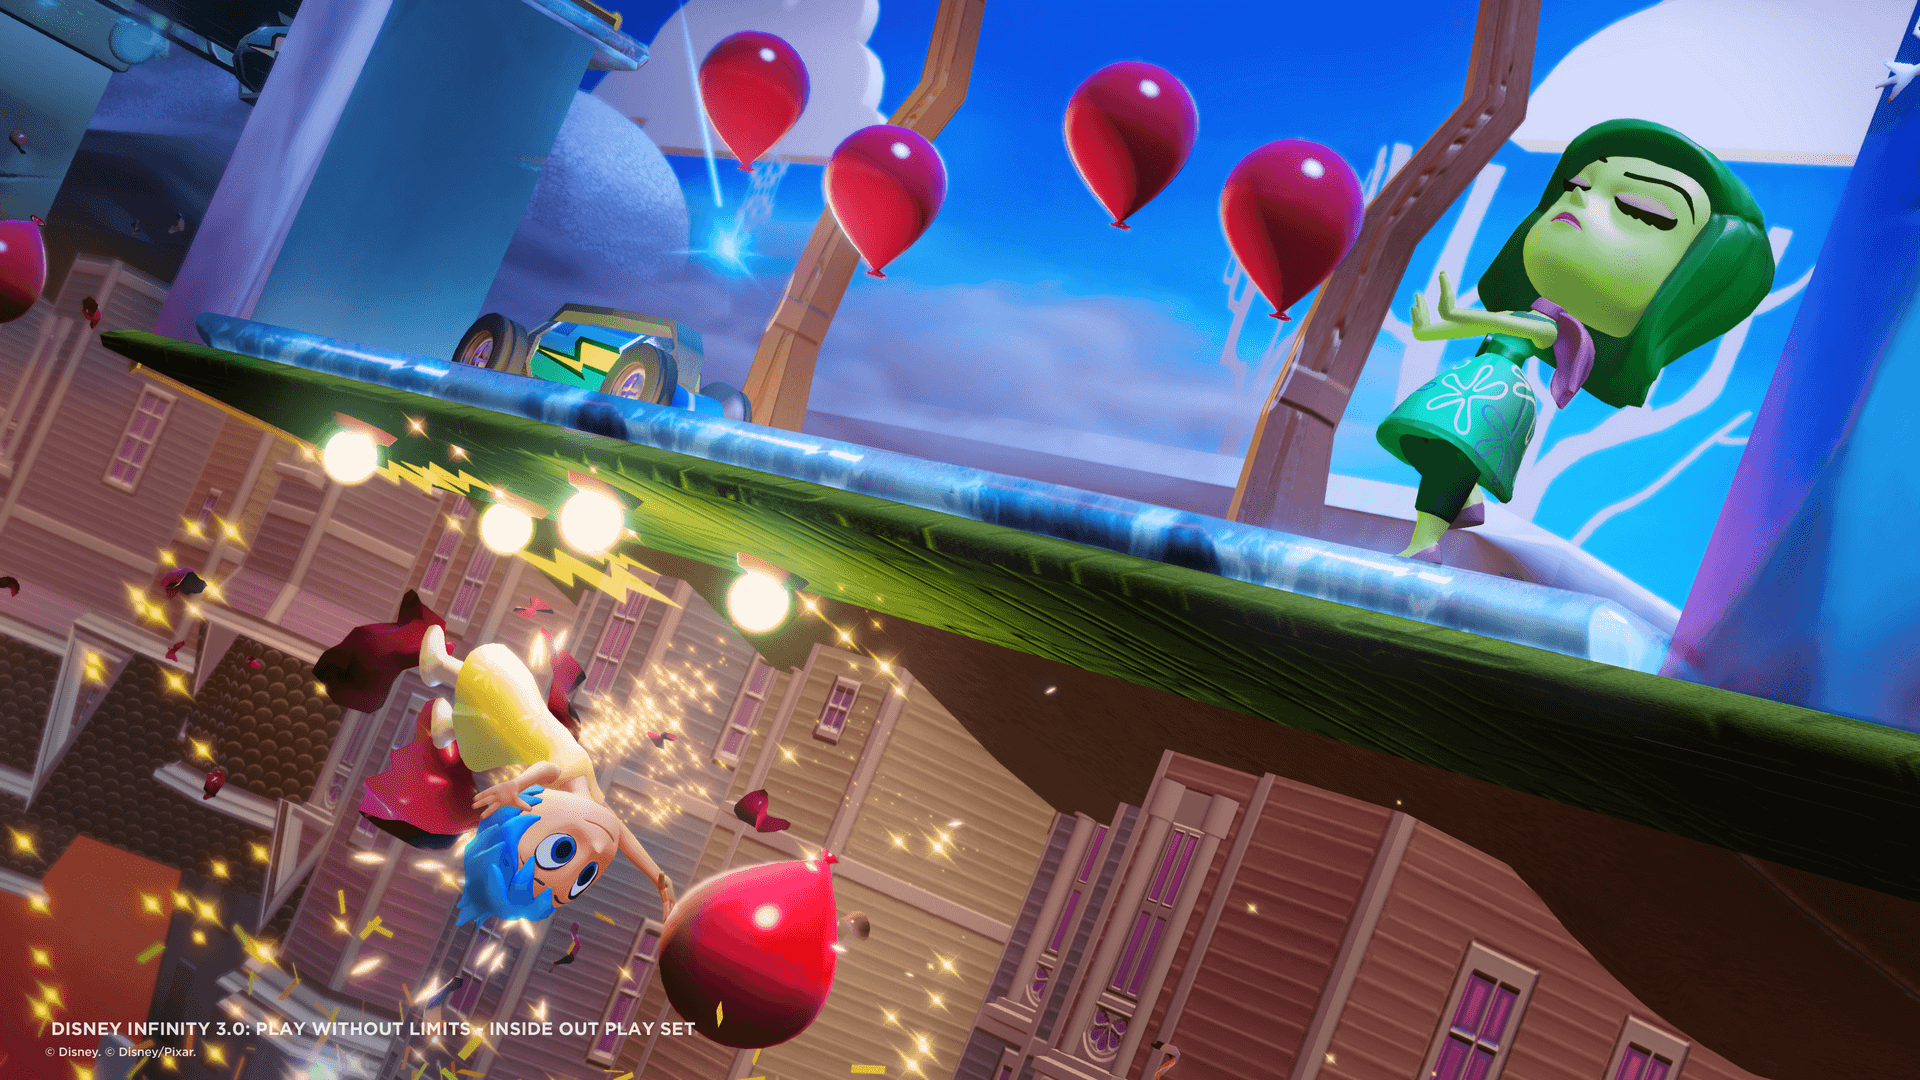 Disney Infinity 3.0: Inside Out Play Set 2